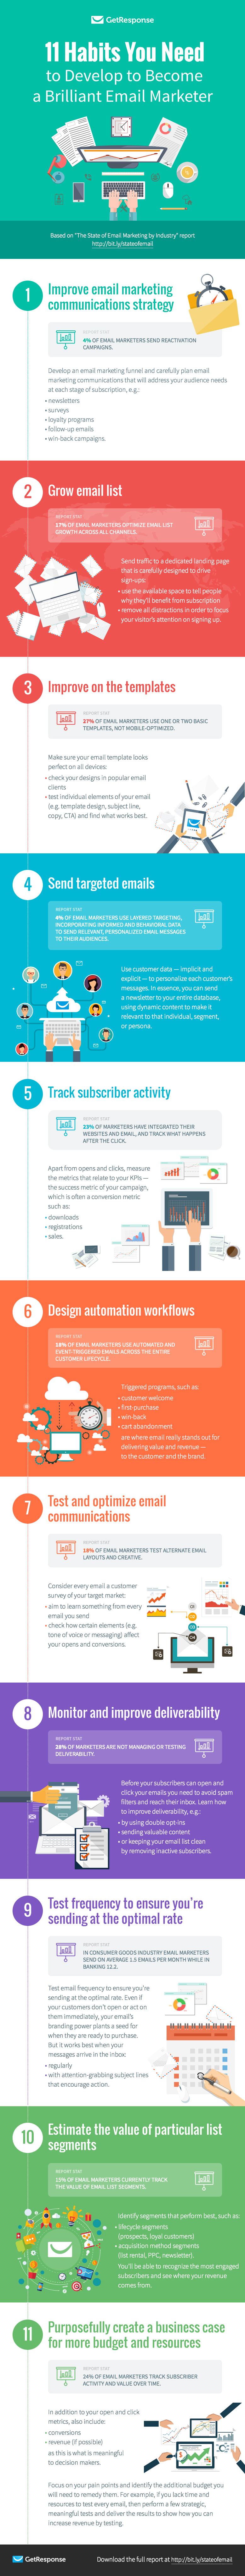 Infographic outlines key tips to improve your email marketing process